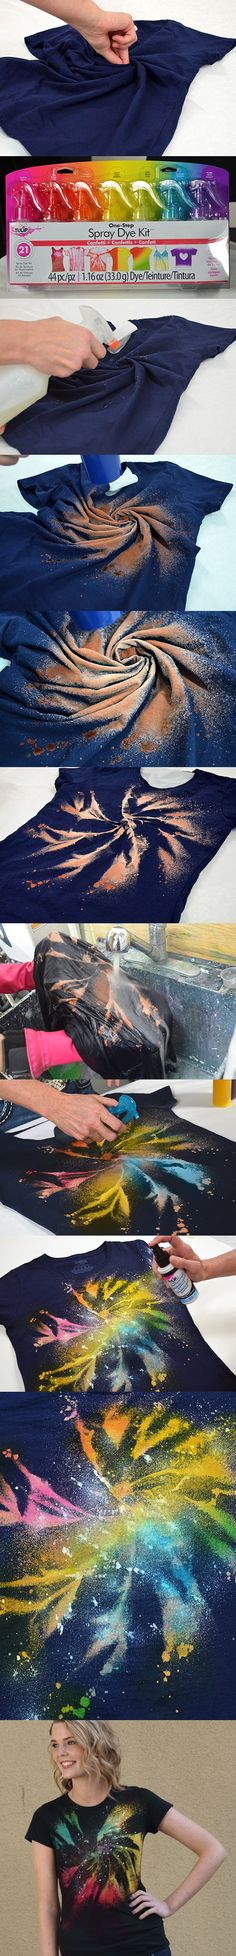 Twist shirt, spray bleach, then add colors...or just leave bleached. Fun activity